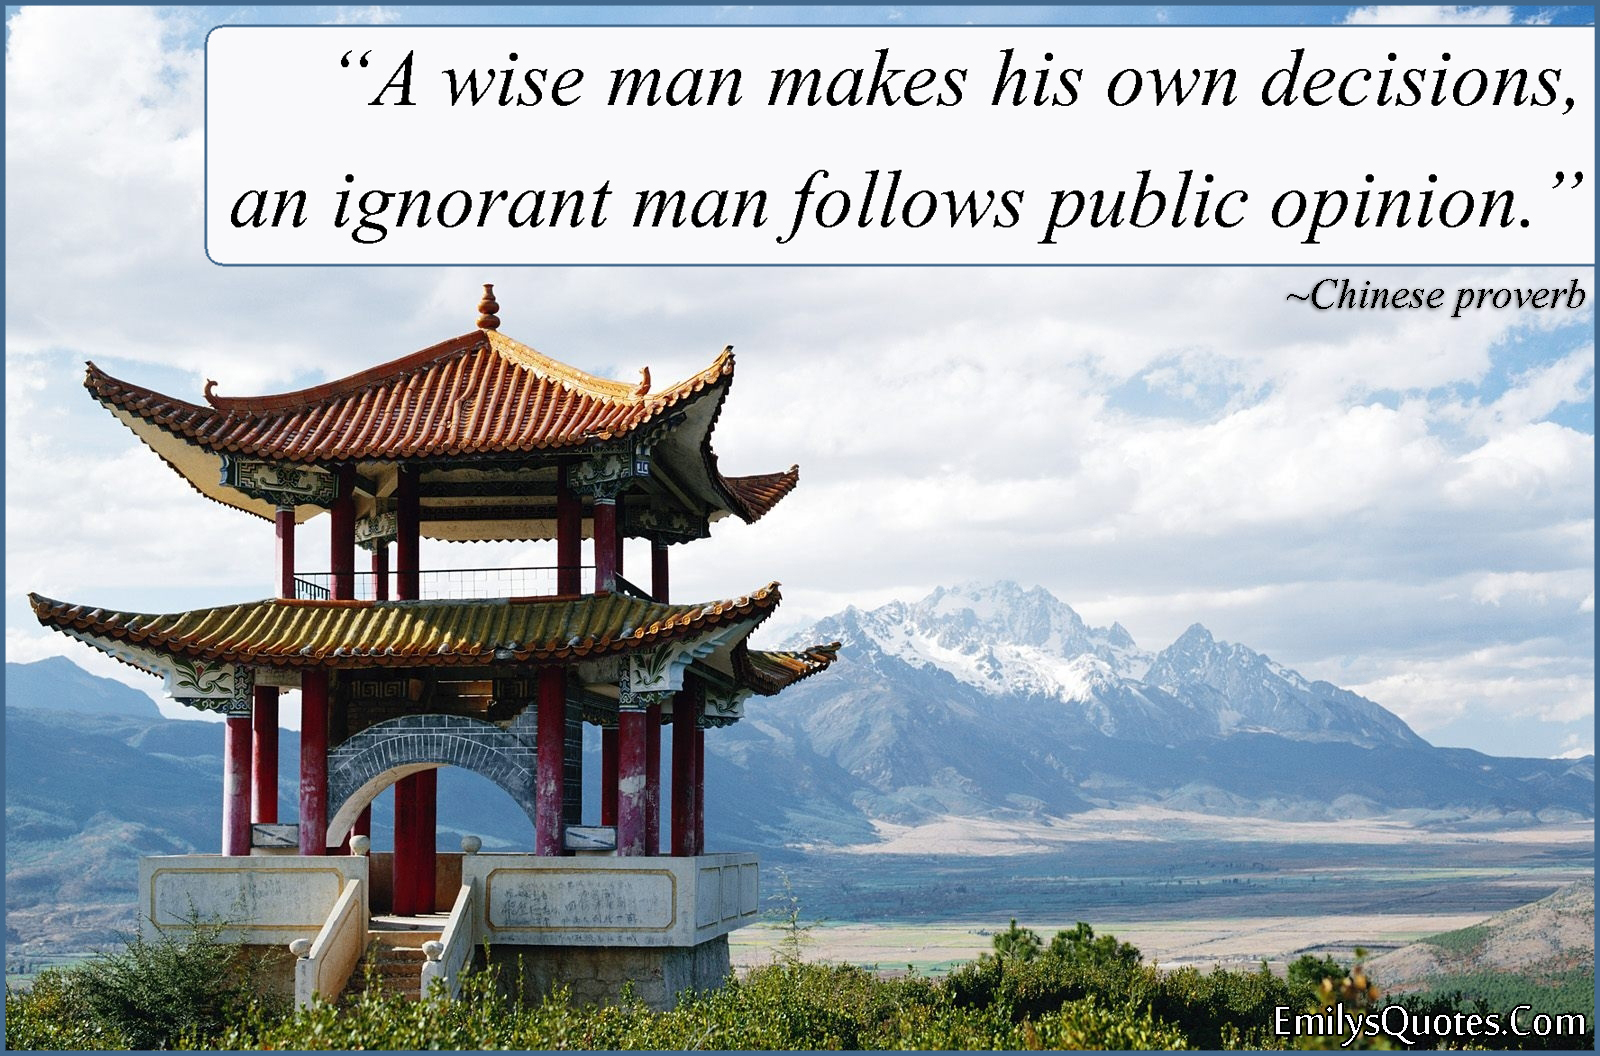 EmilysQuotes.Com - wisdom, decision, ignorant, opinion, difference, people, Chinese proverb